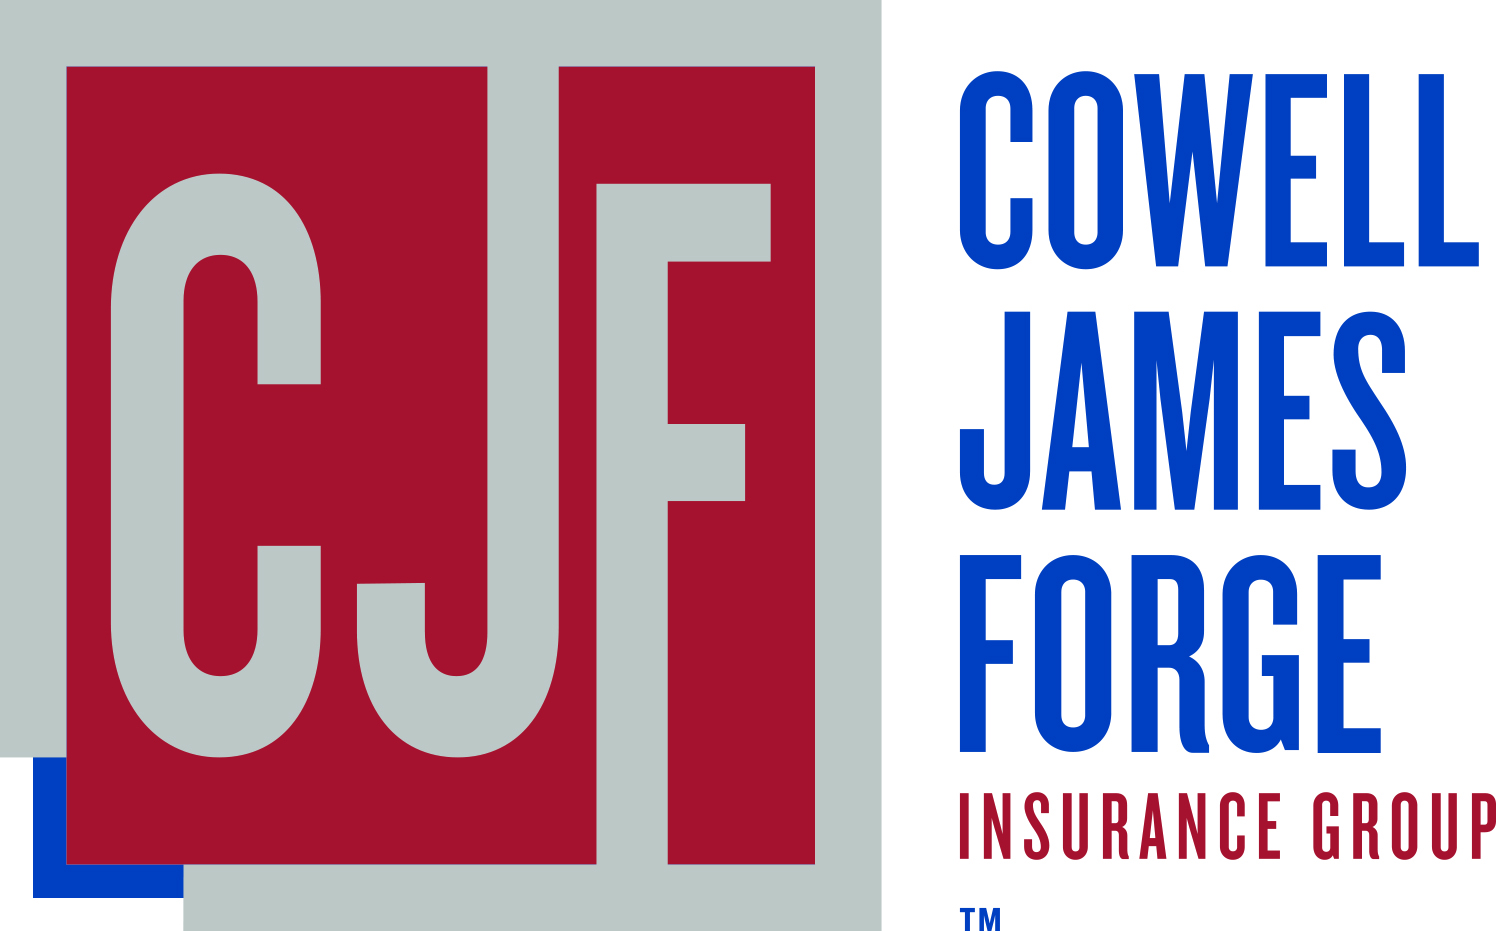 Cowell James Forge Insurance Group